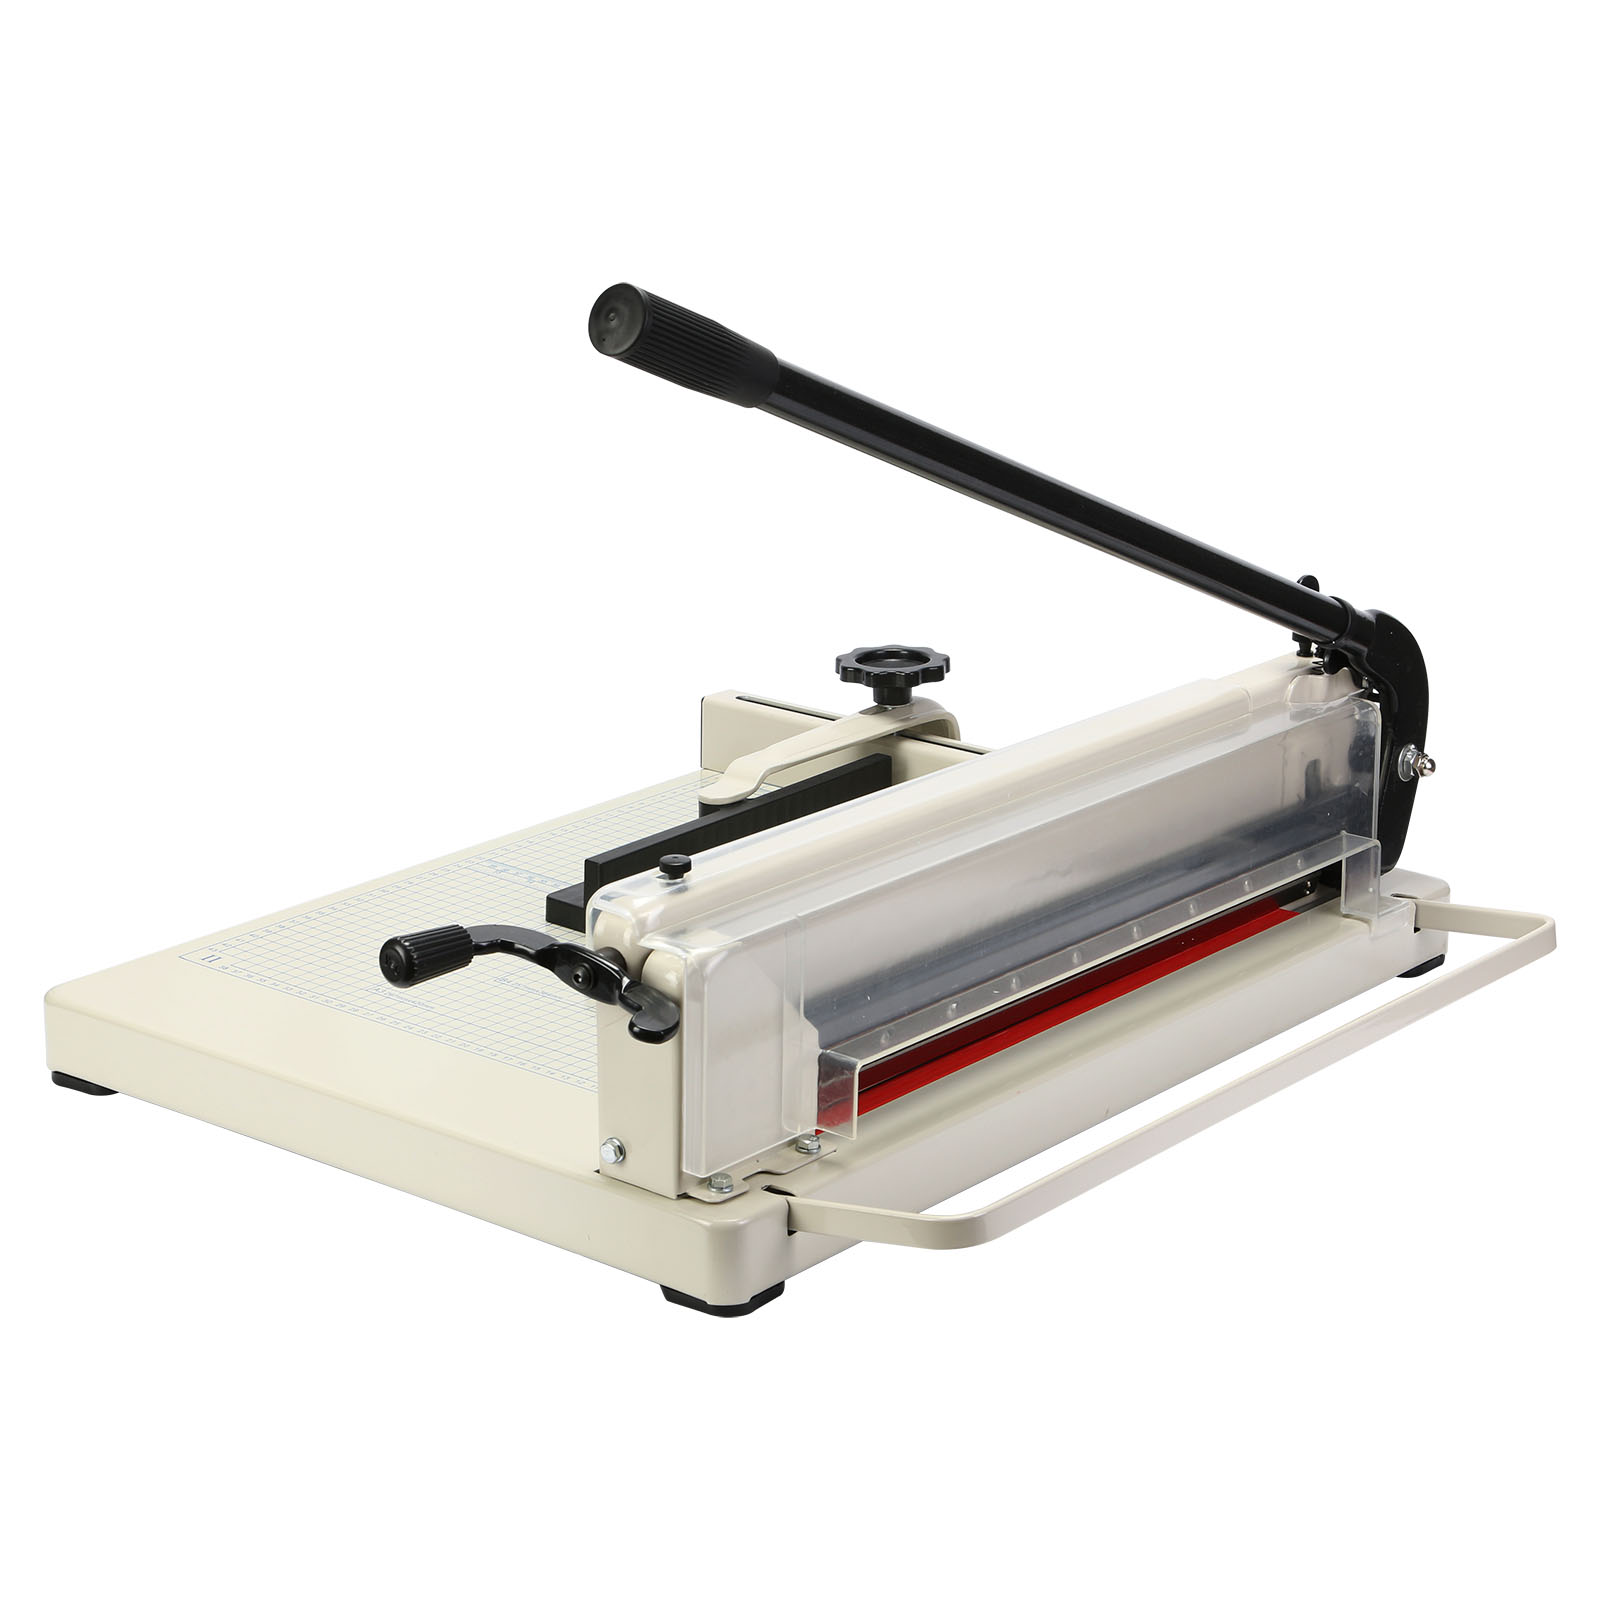 paper cutter guillotine Guillotine paper cutter, 40 sheet capacity, base material steel, and blade material stainless steel varies by cutting length.